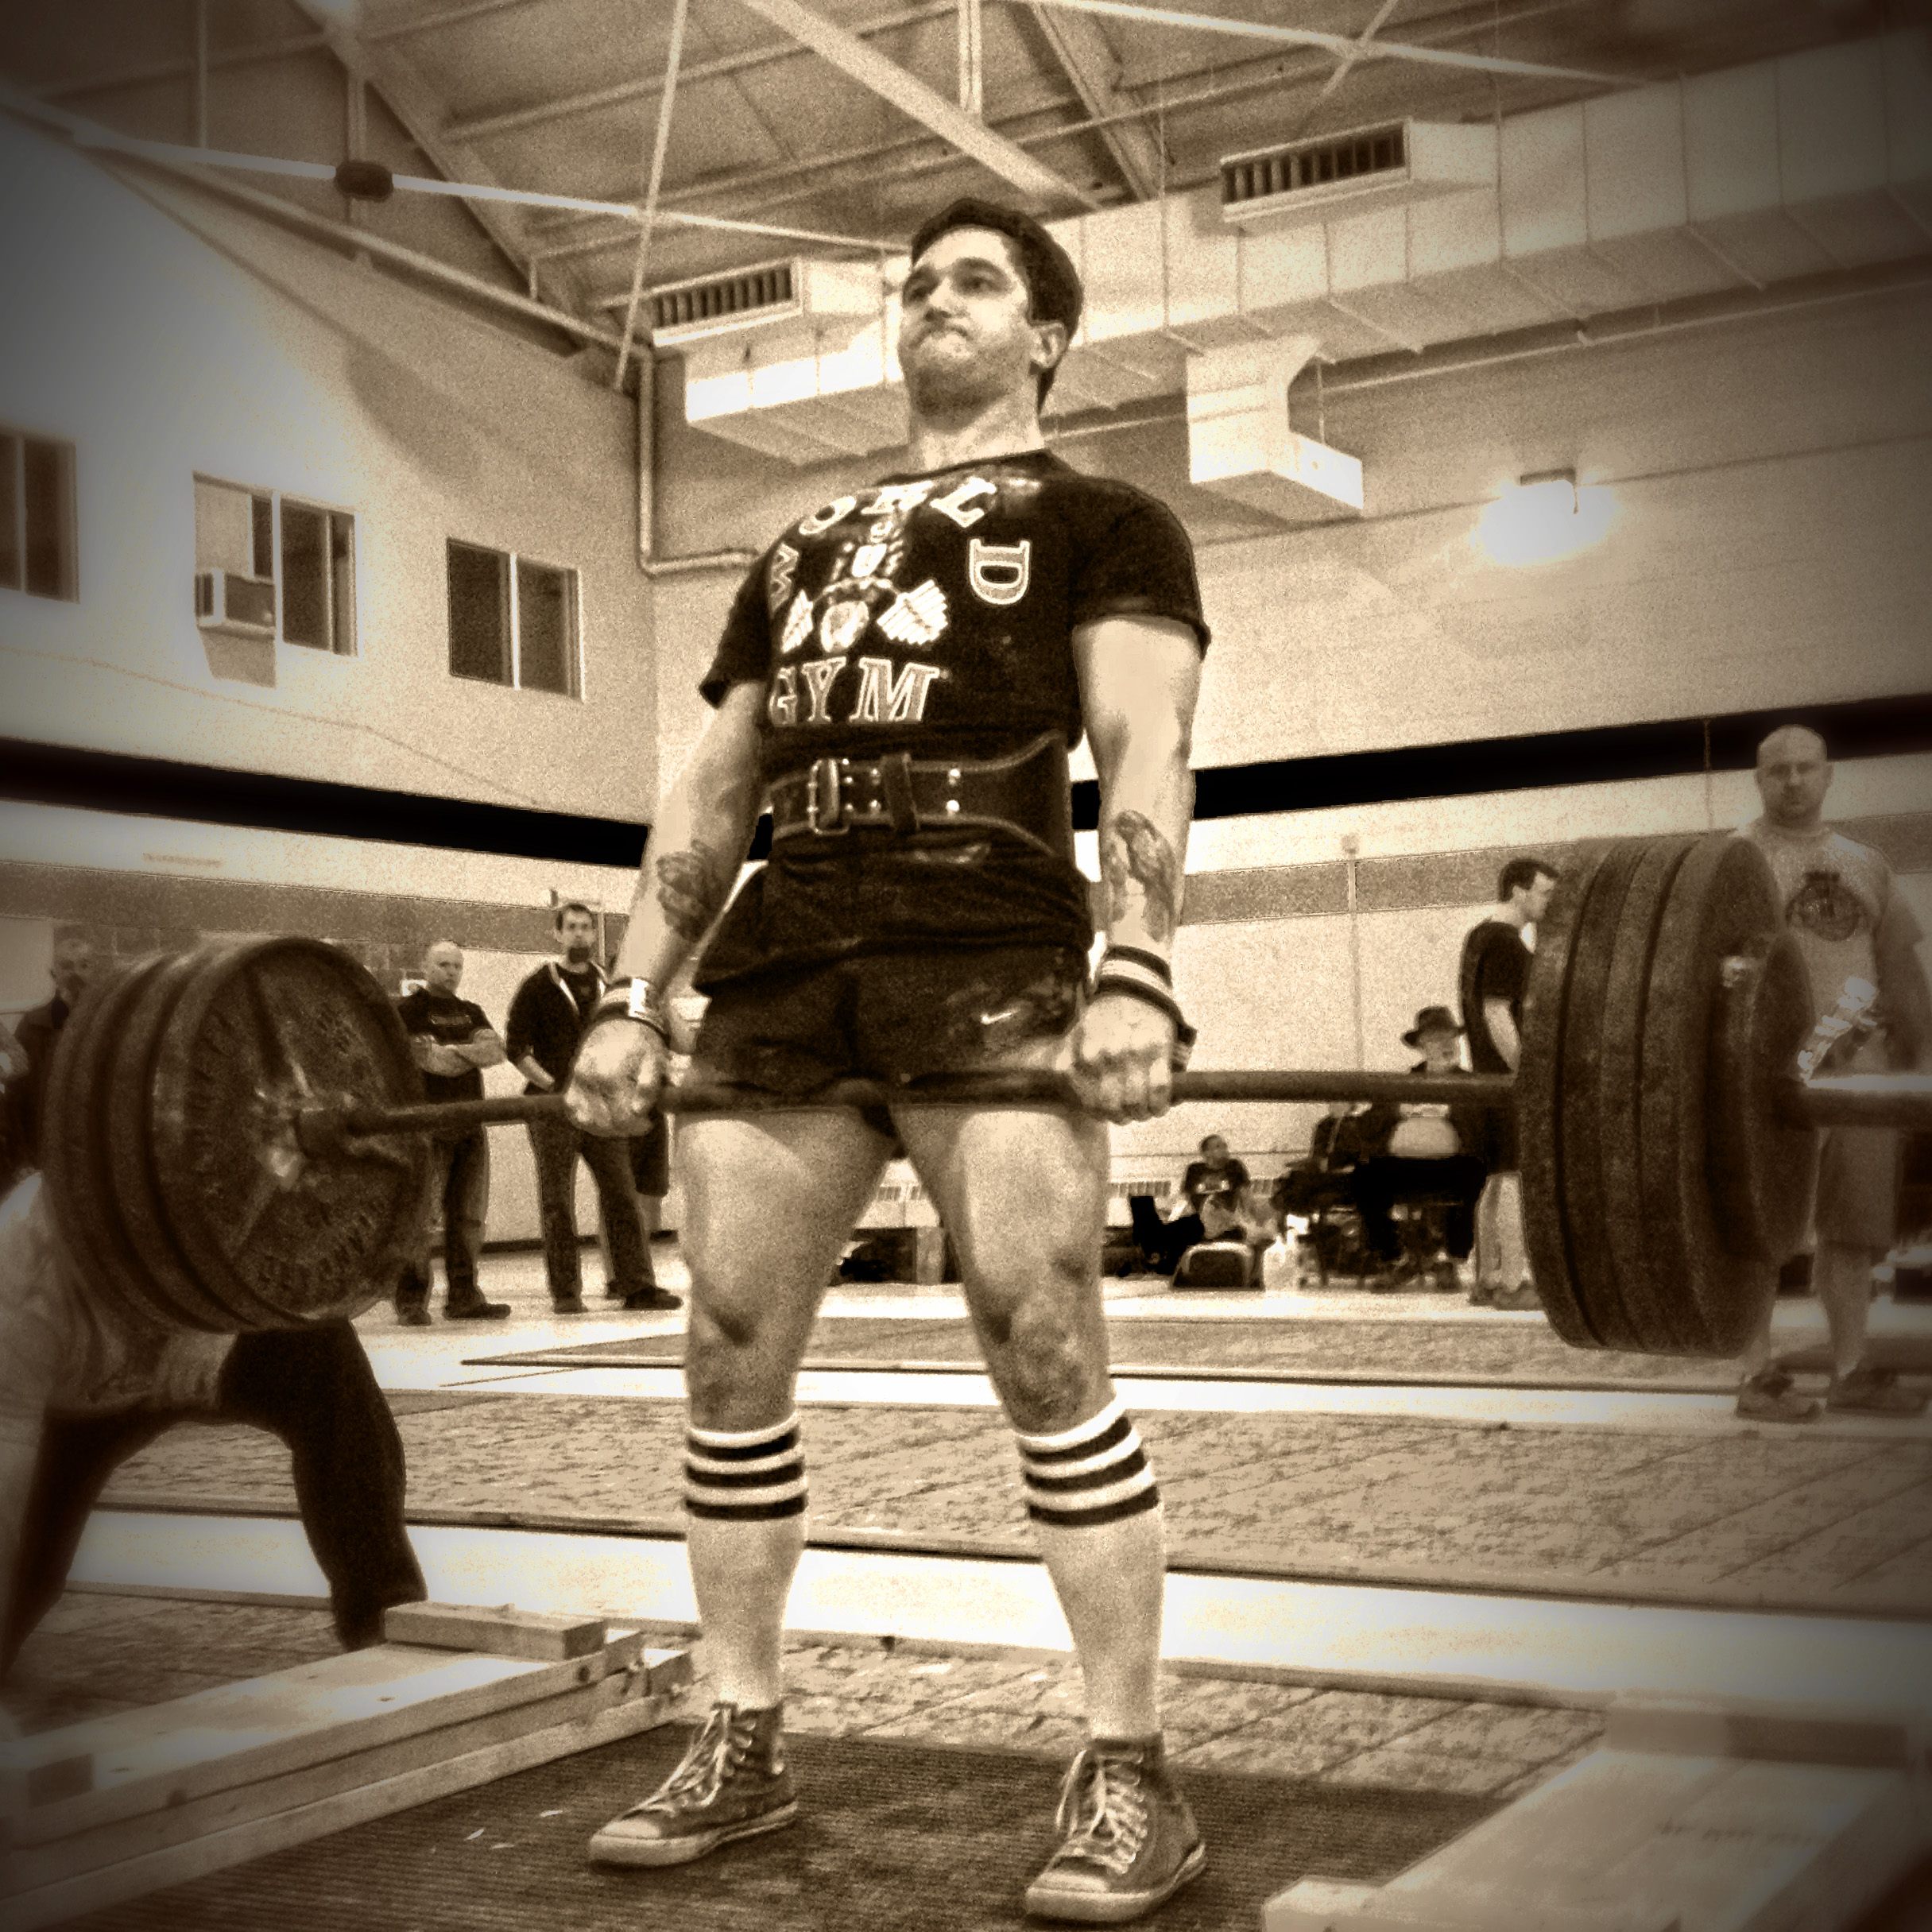 """He has spent the last few years following thew conventions of StrongMan competitions, so can we still consider Steve ( The Beast ) a """"competitive bodybuilder""""?"""